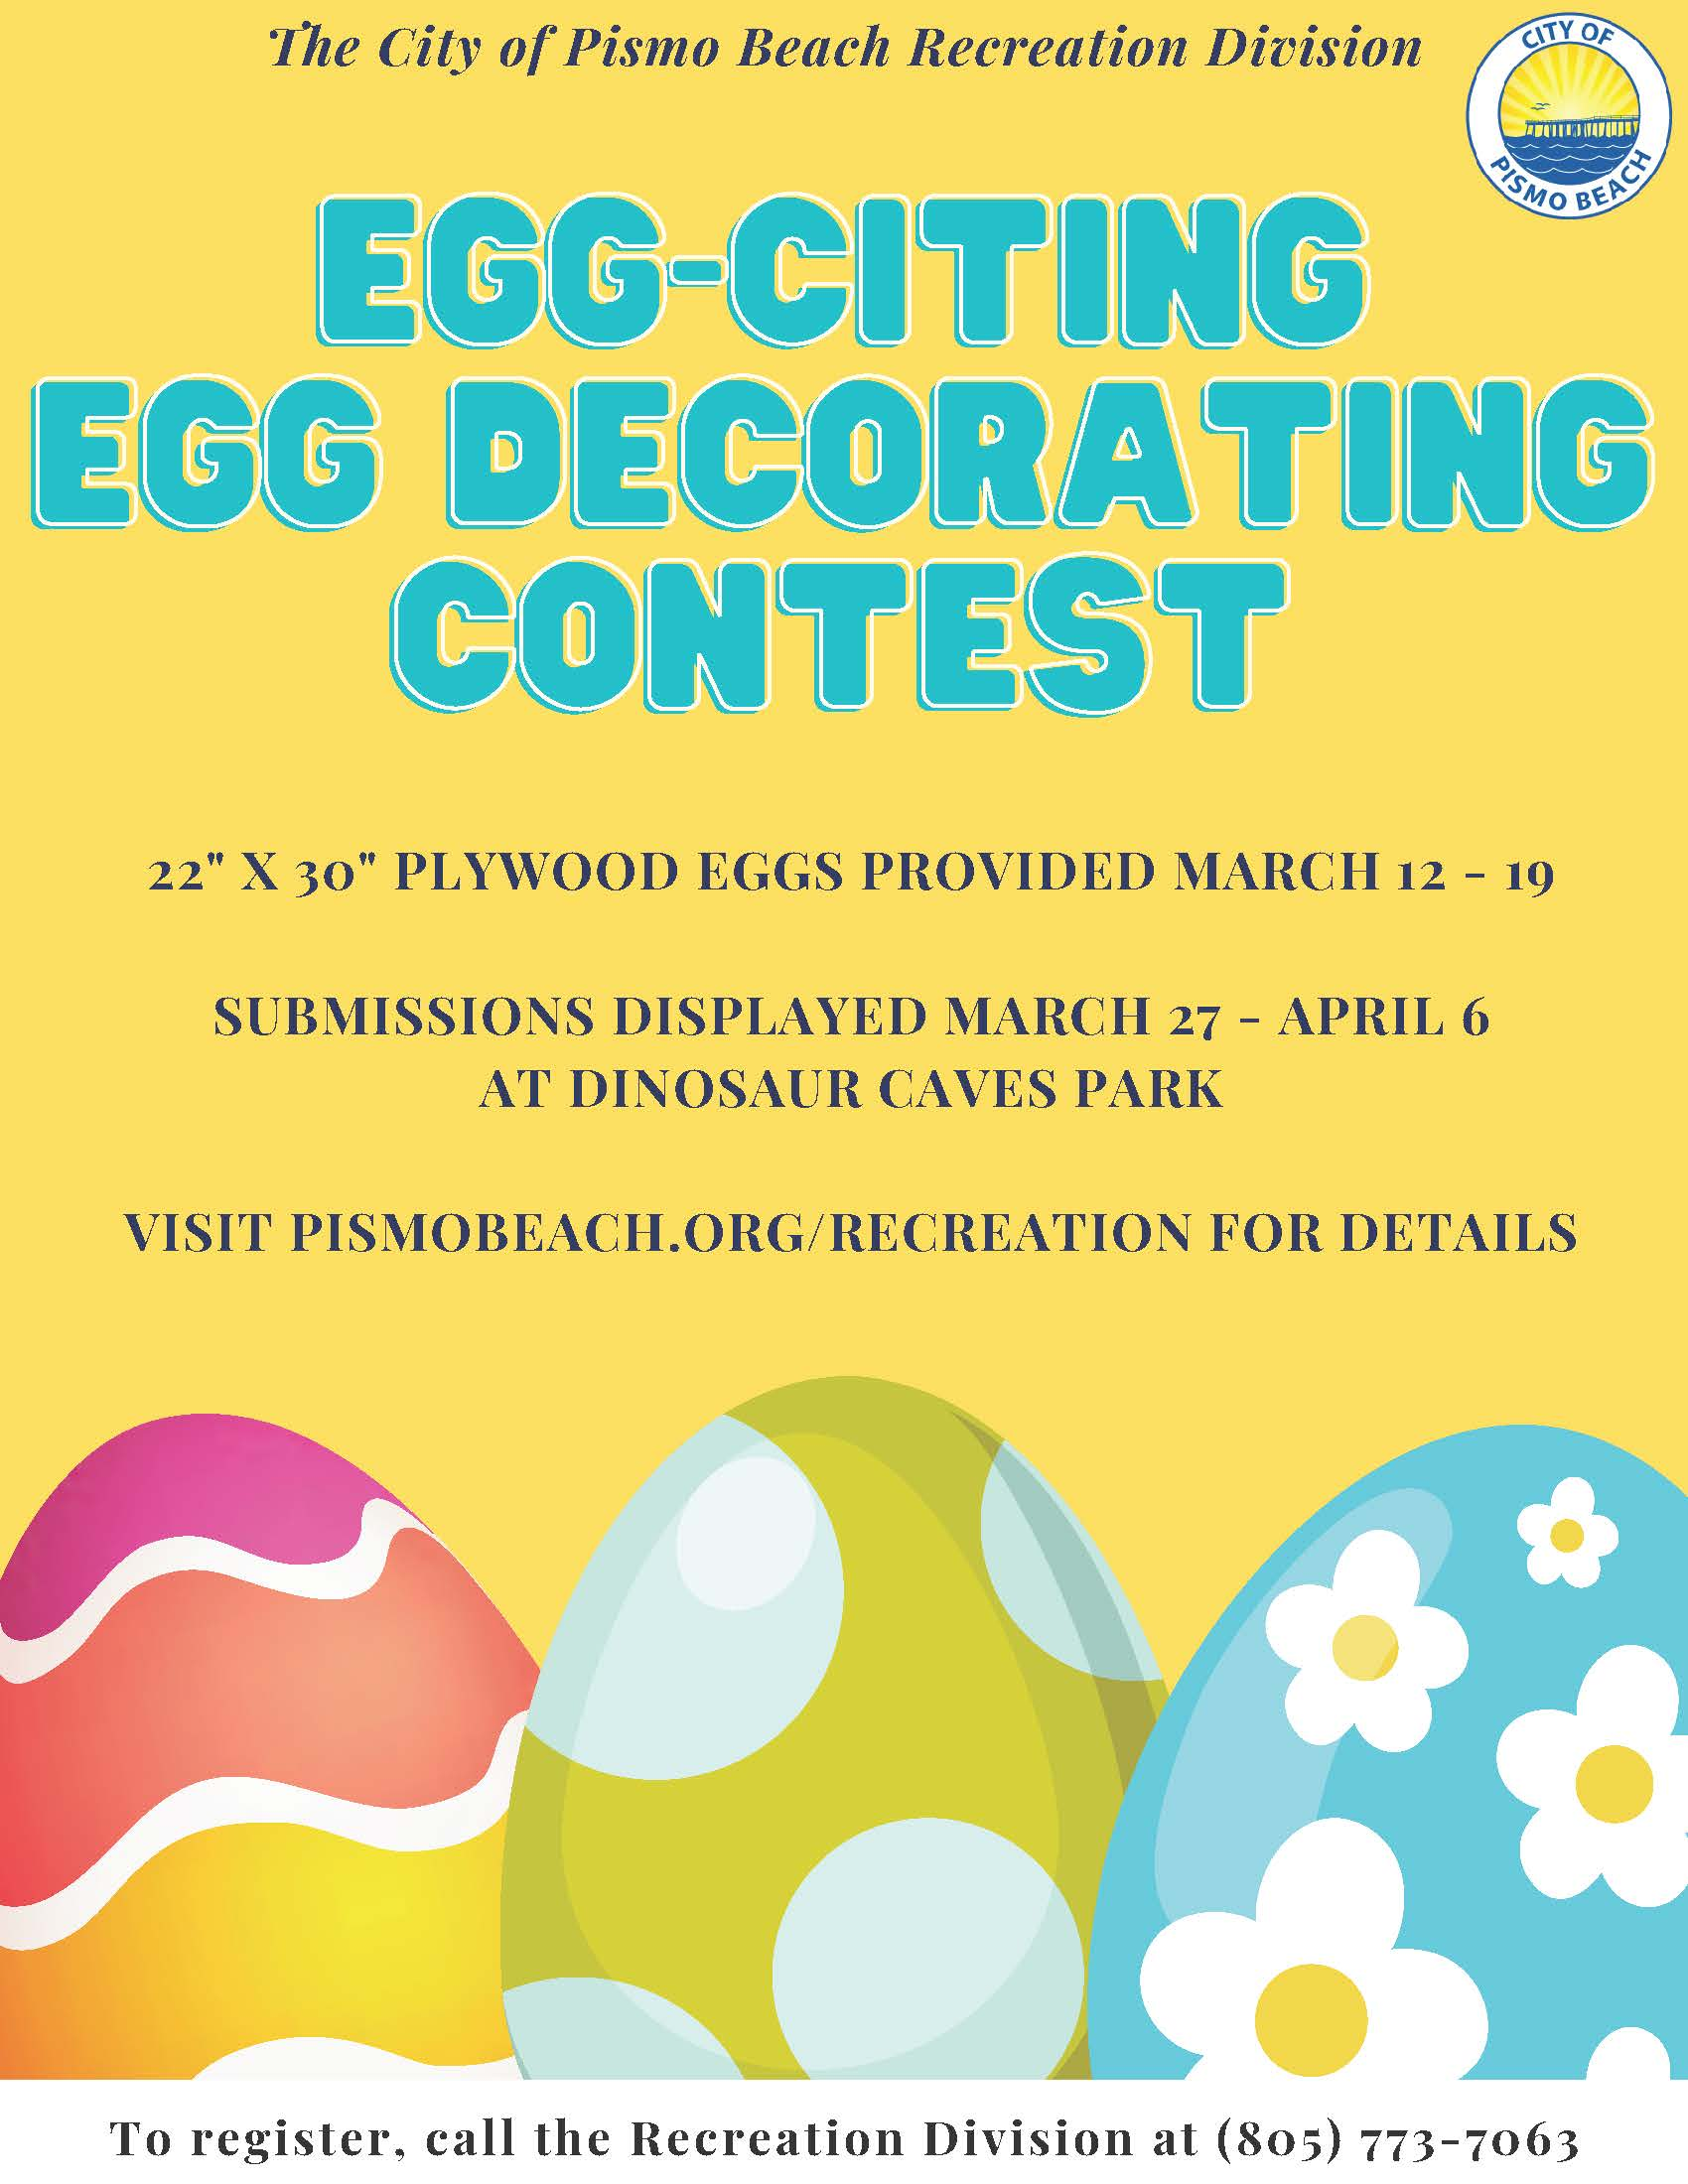 Combined Egg-citing Egg Decorating Contest_Page_1